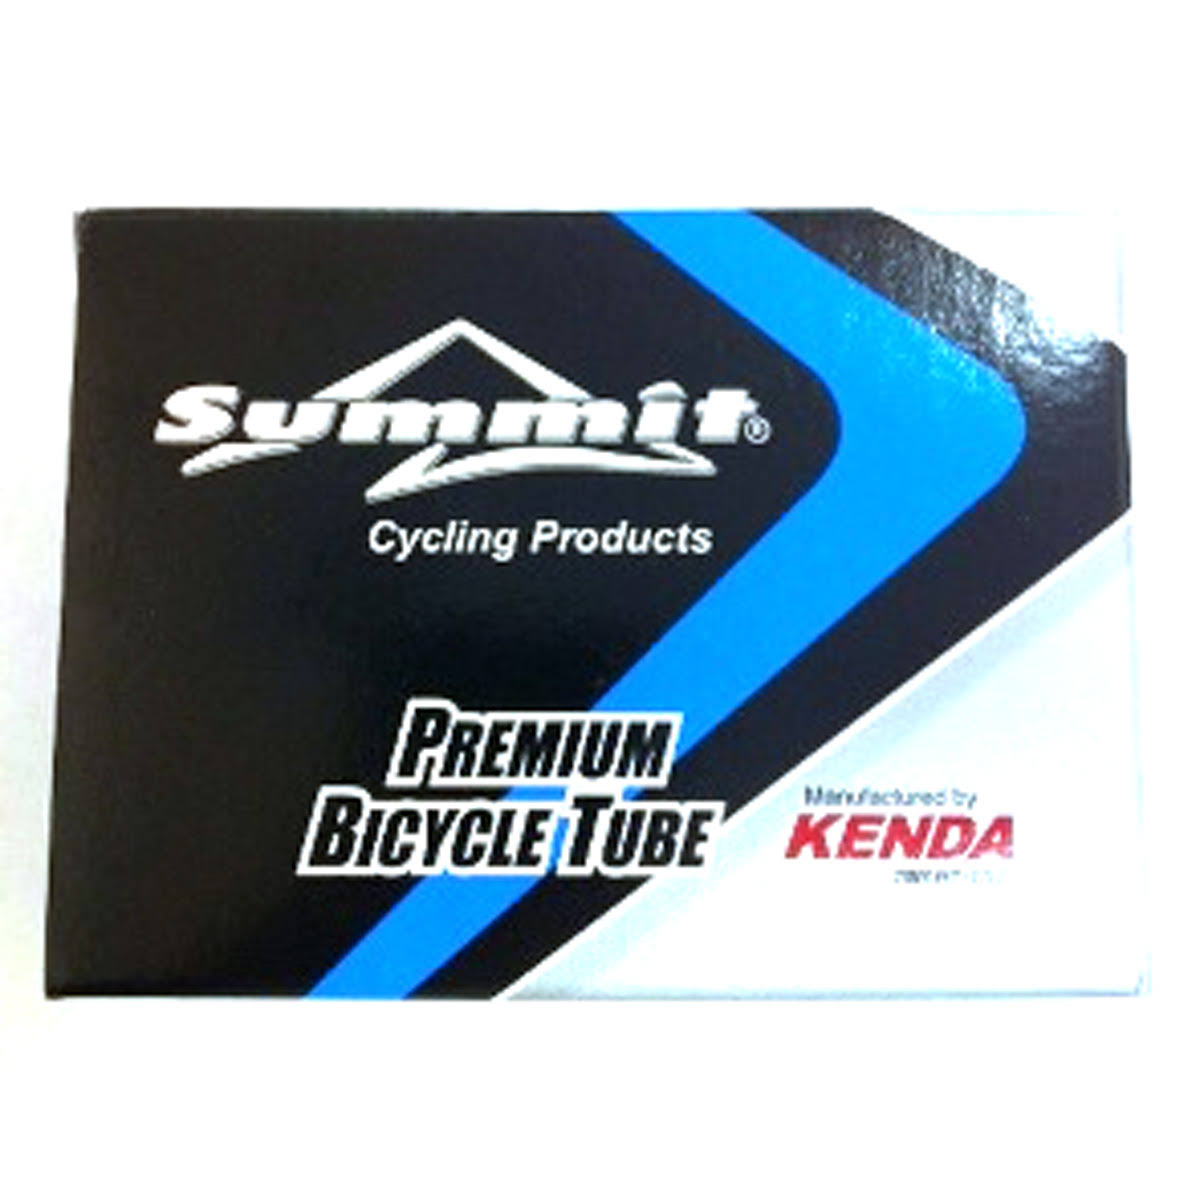 Kenda Presta Bike Tube, Black, 700cm x 28/32C